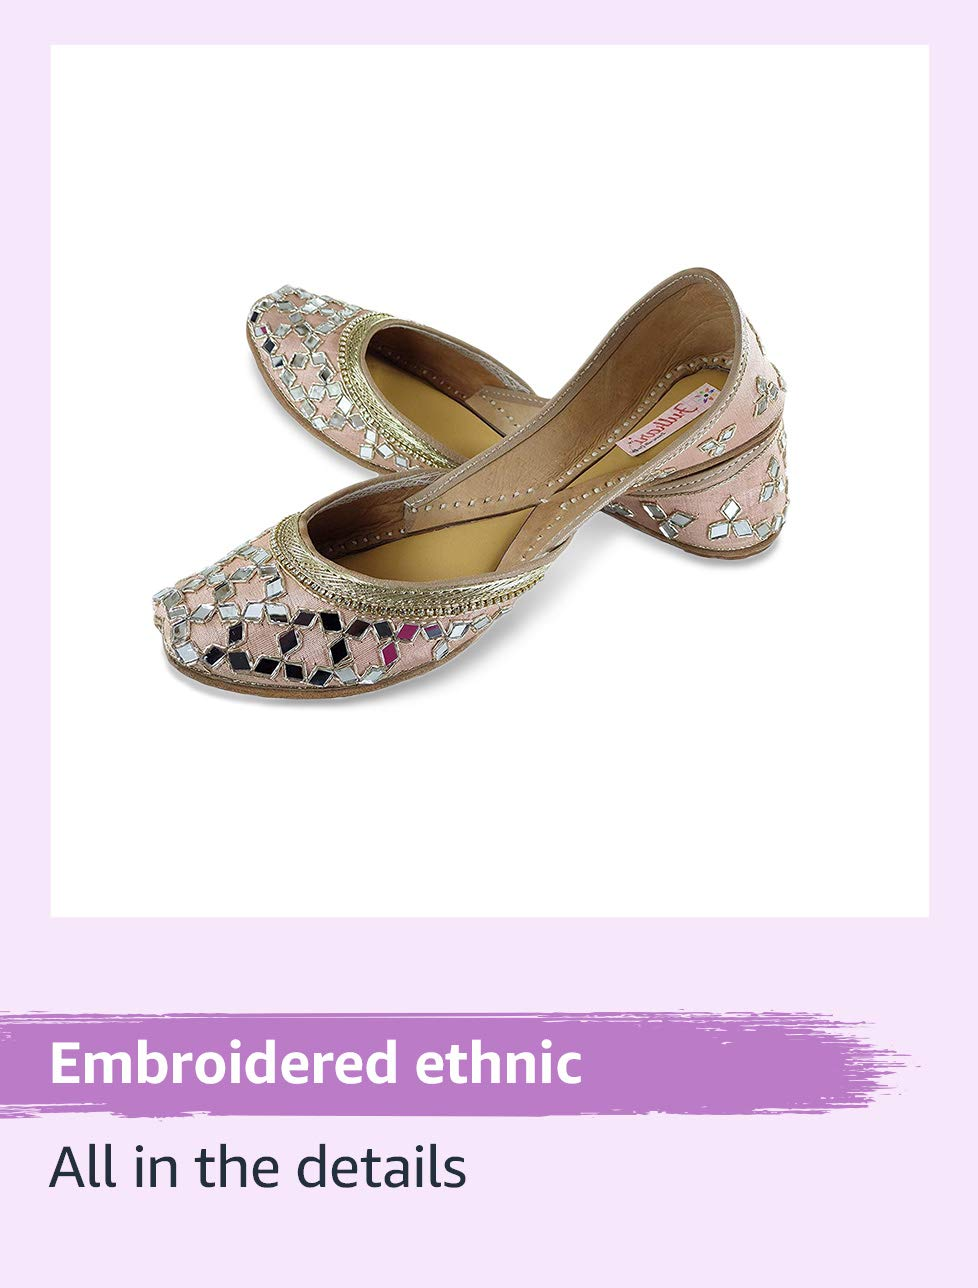 Embroidered ethnic